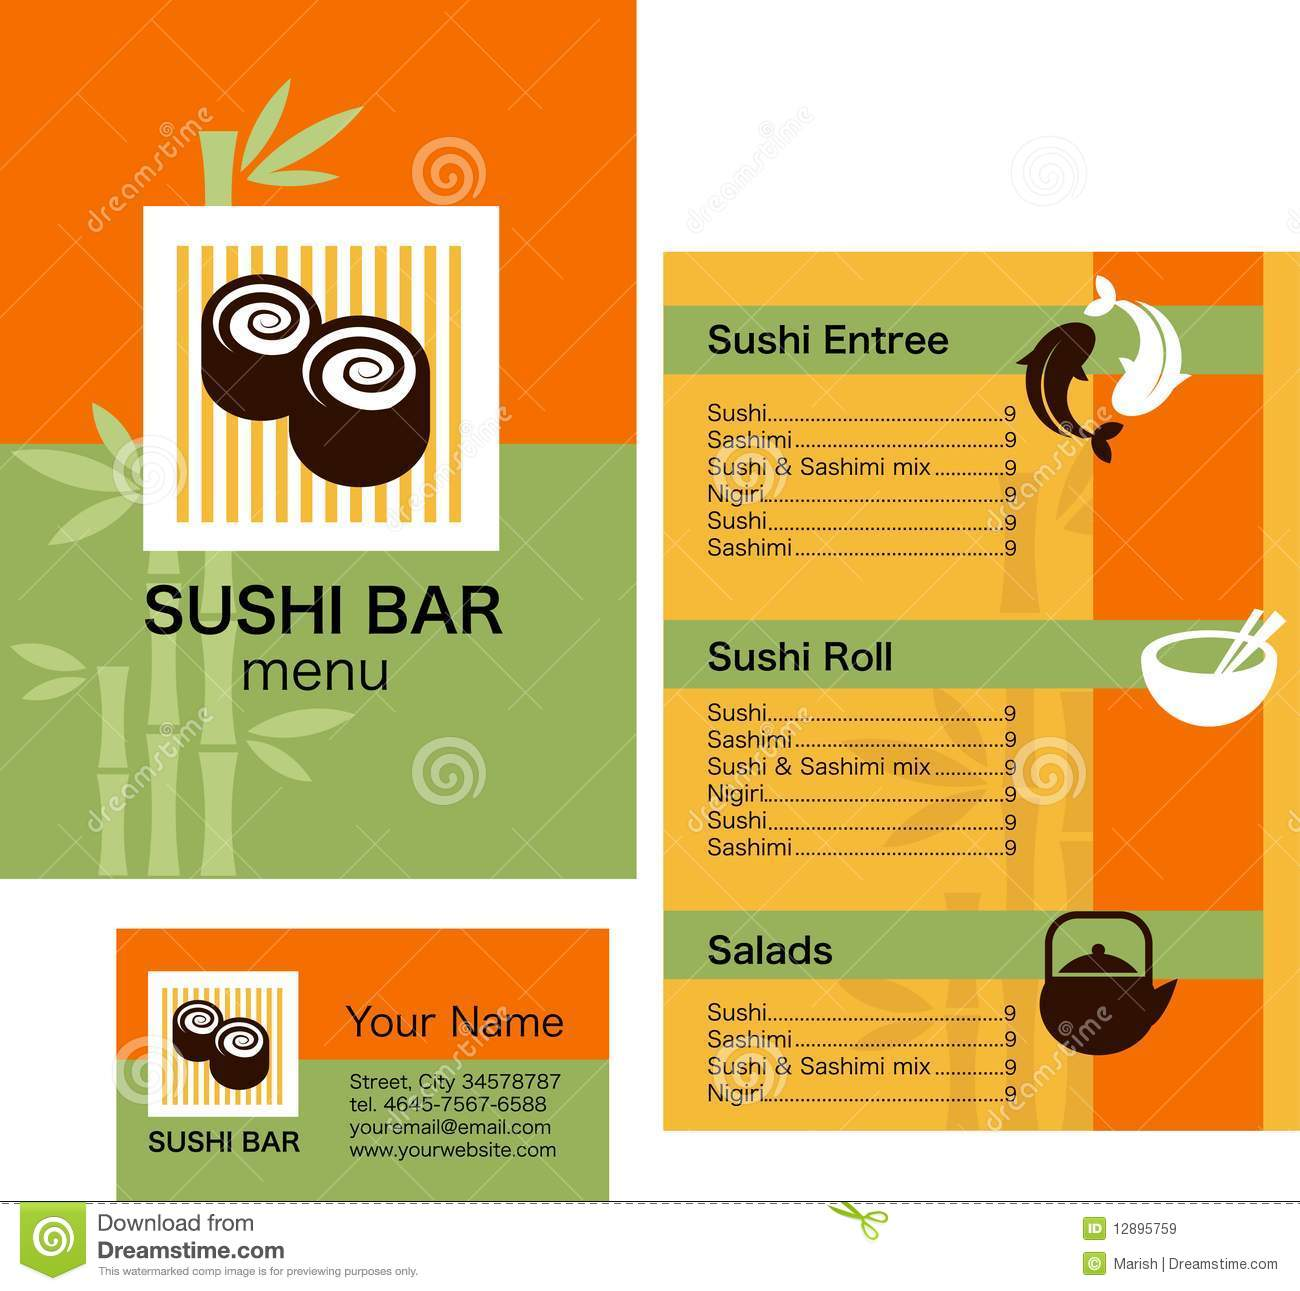 Sushi menu template and business card with logo stock vector sushi menu template and business card with logo fbccfo